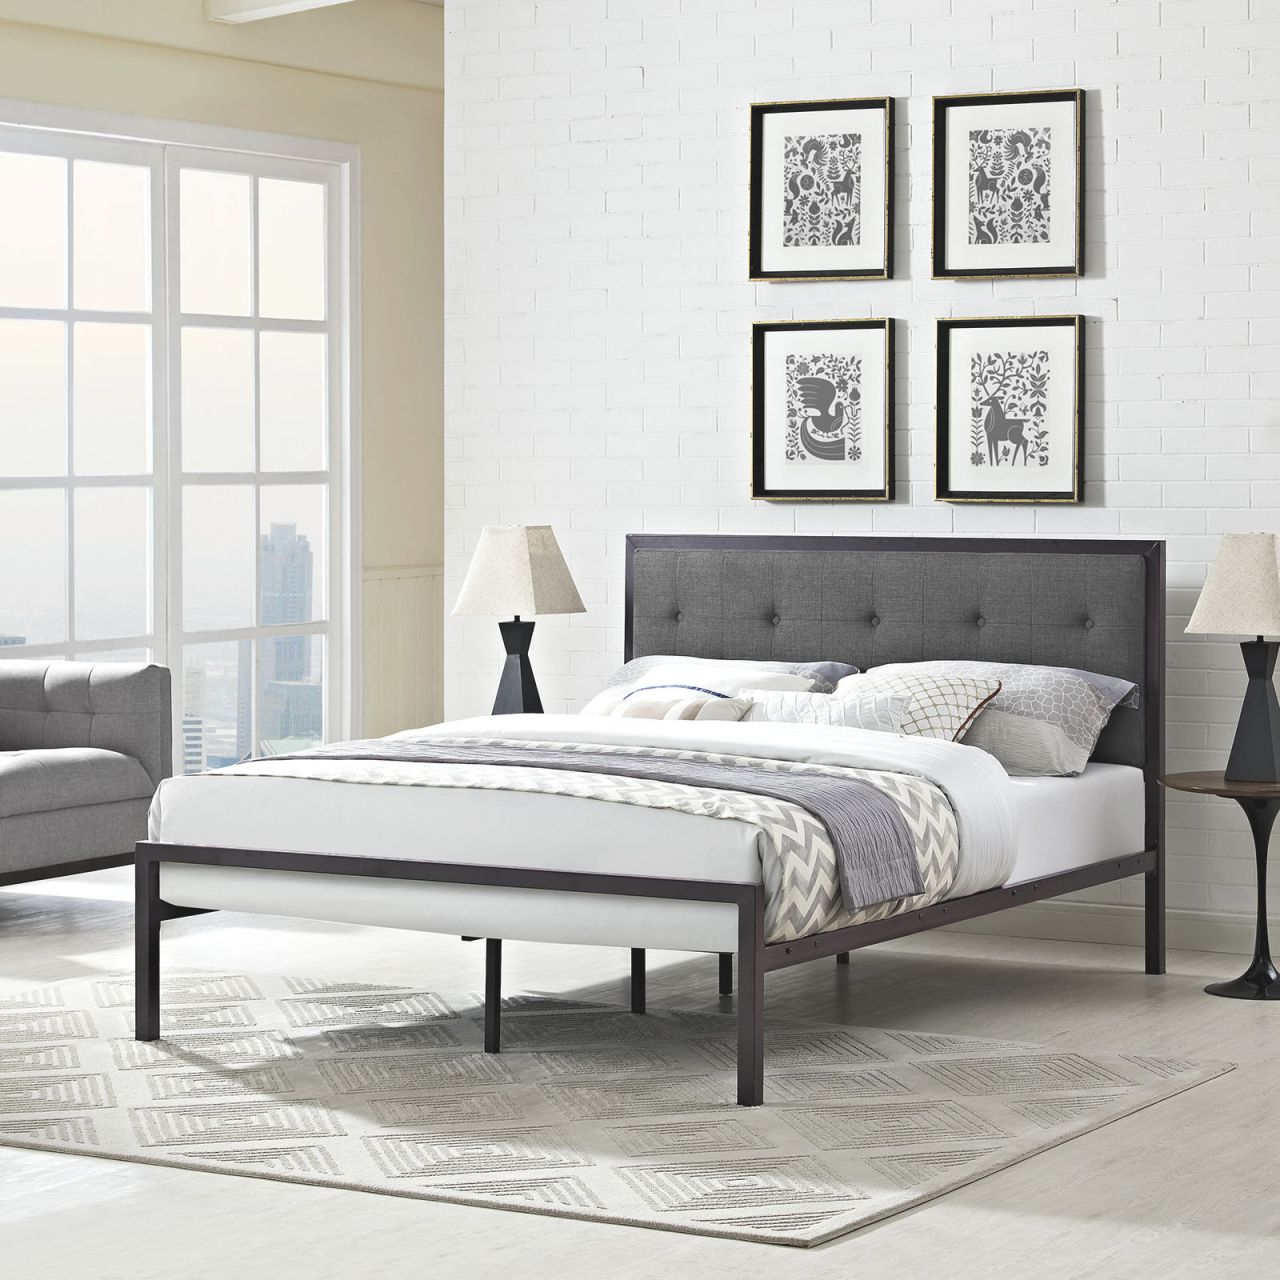 Lottie 5447 King Platform Brown Metal Bed Frame With Gray Fabric Headboard throughout Best of King Bed Frame With Headboard